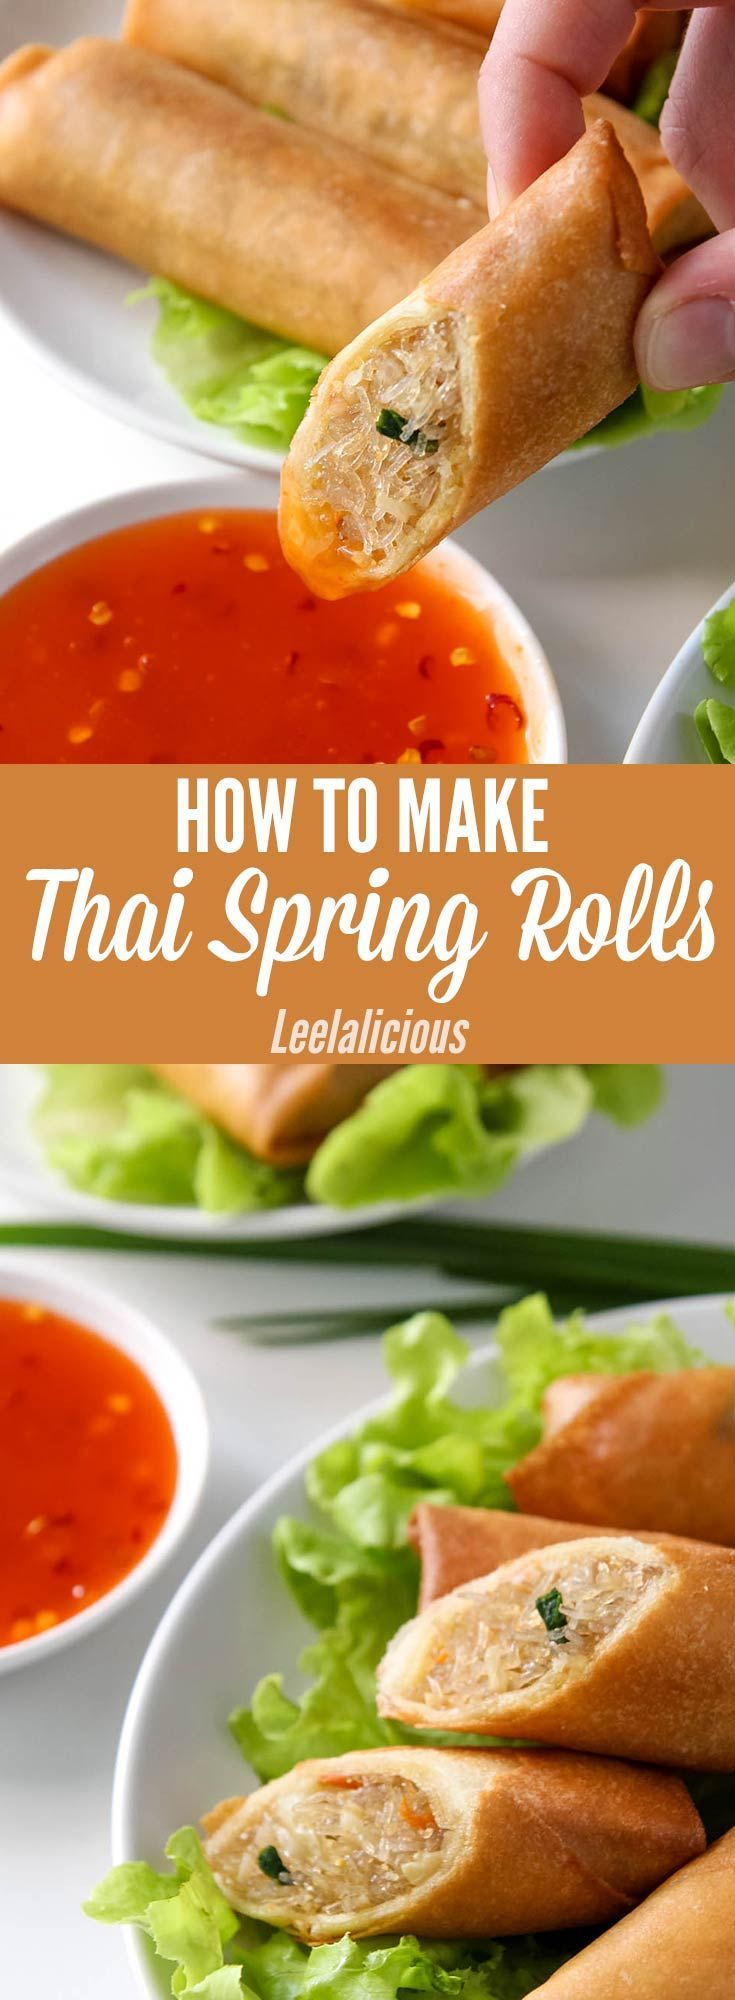 How to make delicious Thai Spring Rolls - this recipe tutorial for crispy spring rolls with vegetable and glass noodle filling is a crowd pleasing appetizer. Perfect with sweet chili sauce dip.